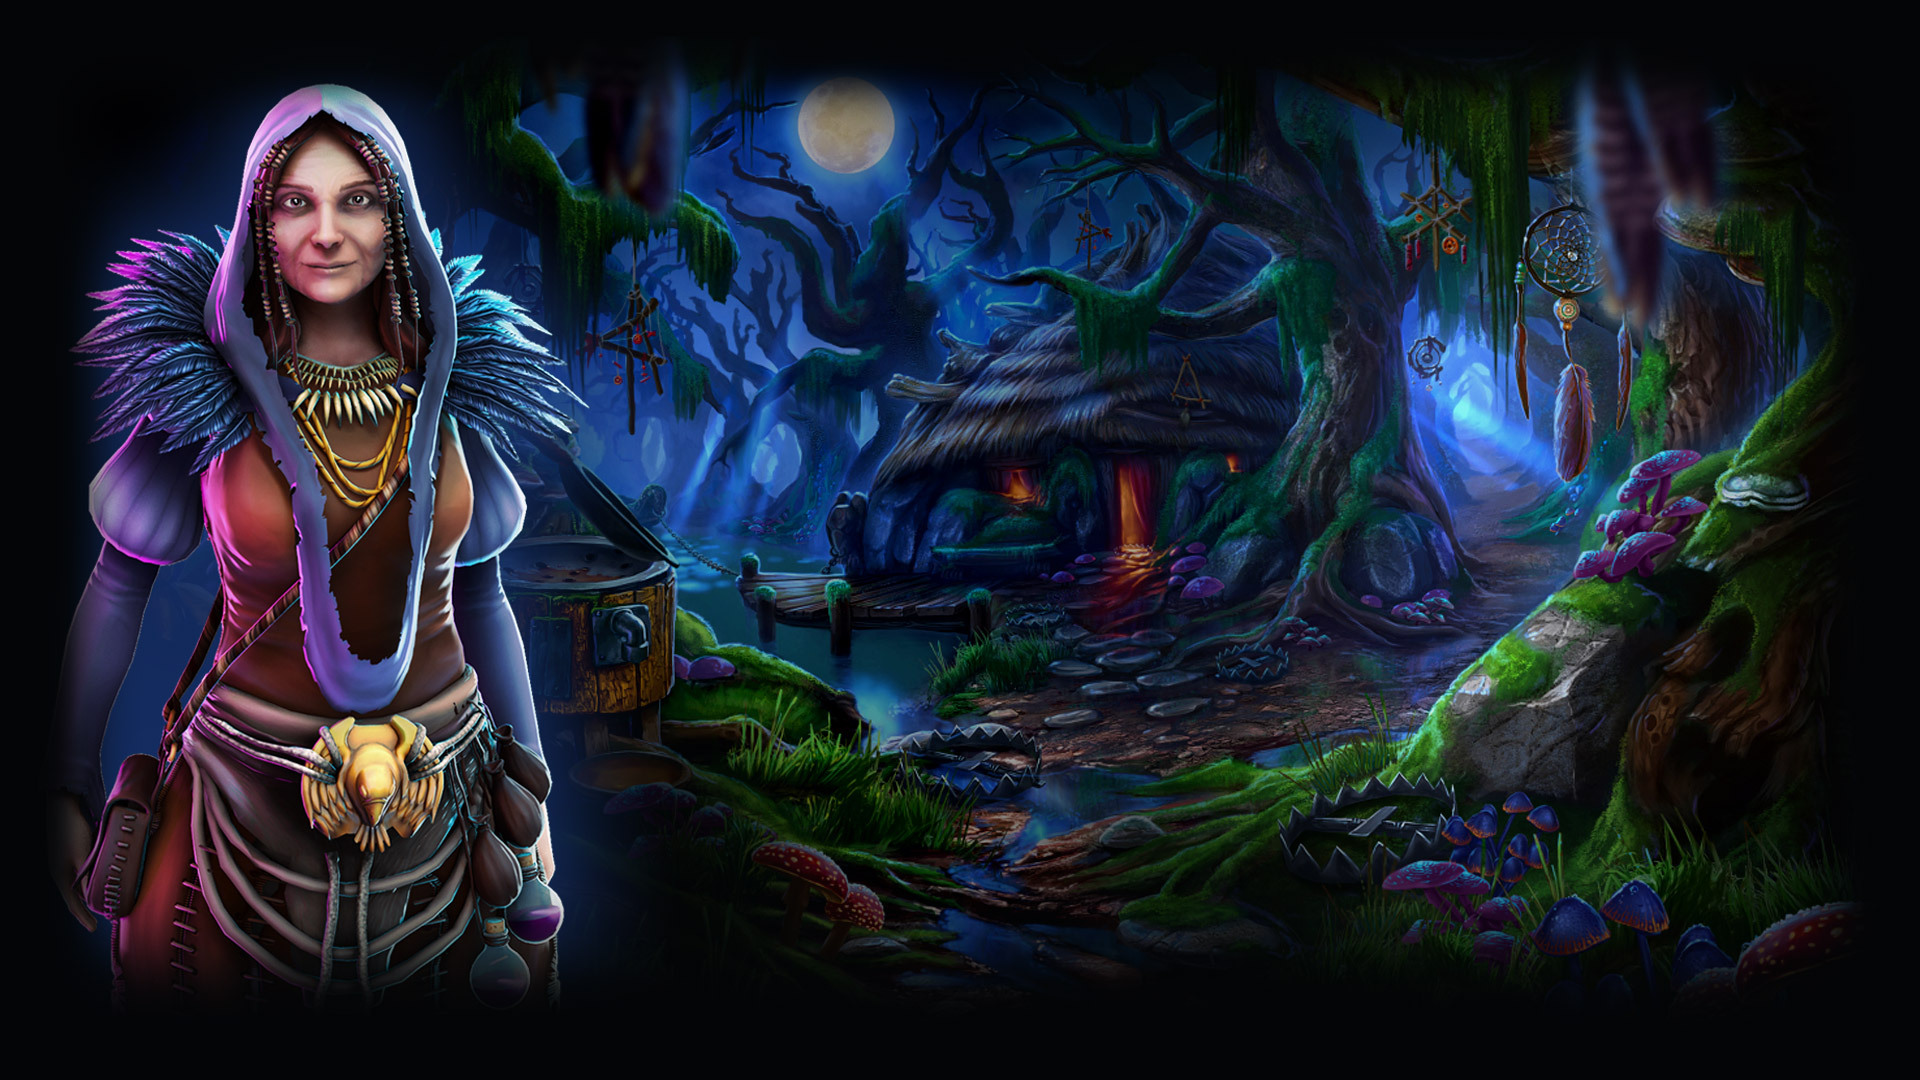 Grim Legends: The Forsaken Bride Backgrounds, Compatible - PC, Mobile, Gadgets| 1920x1080 px